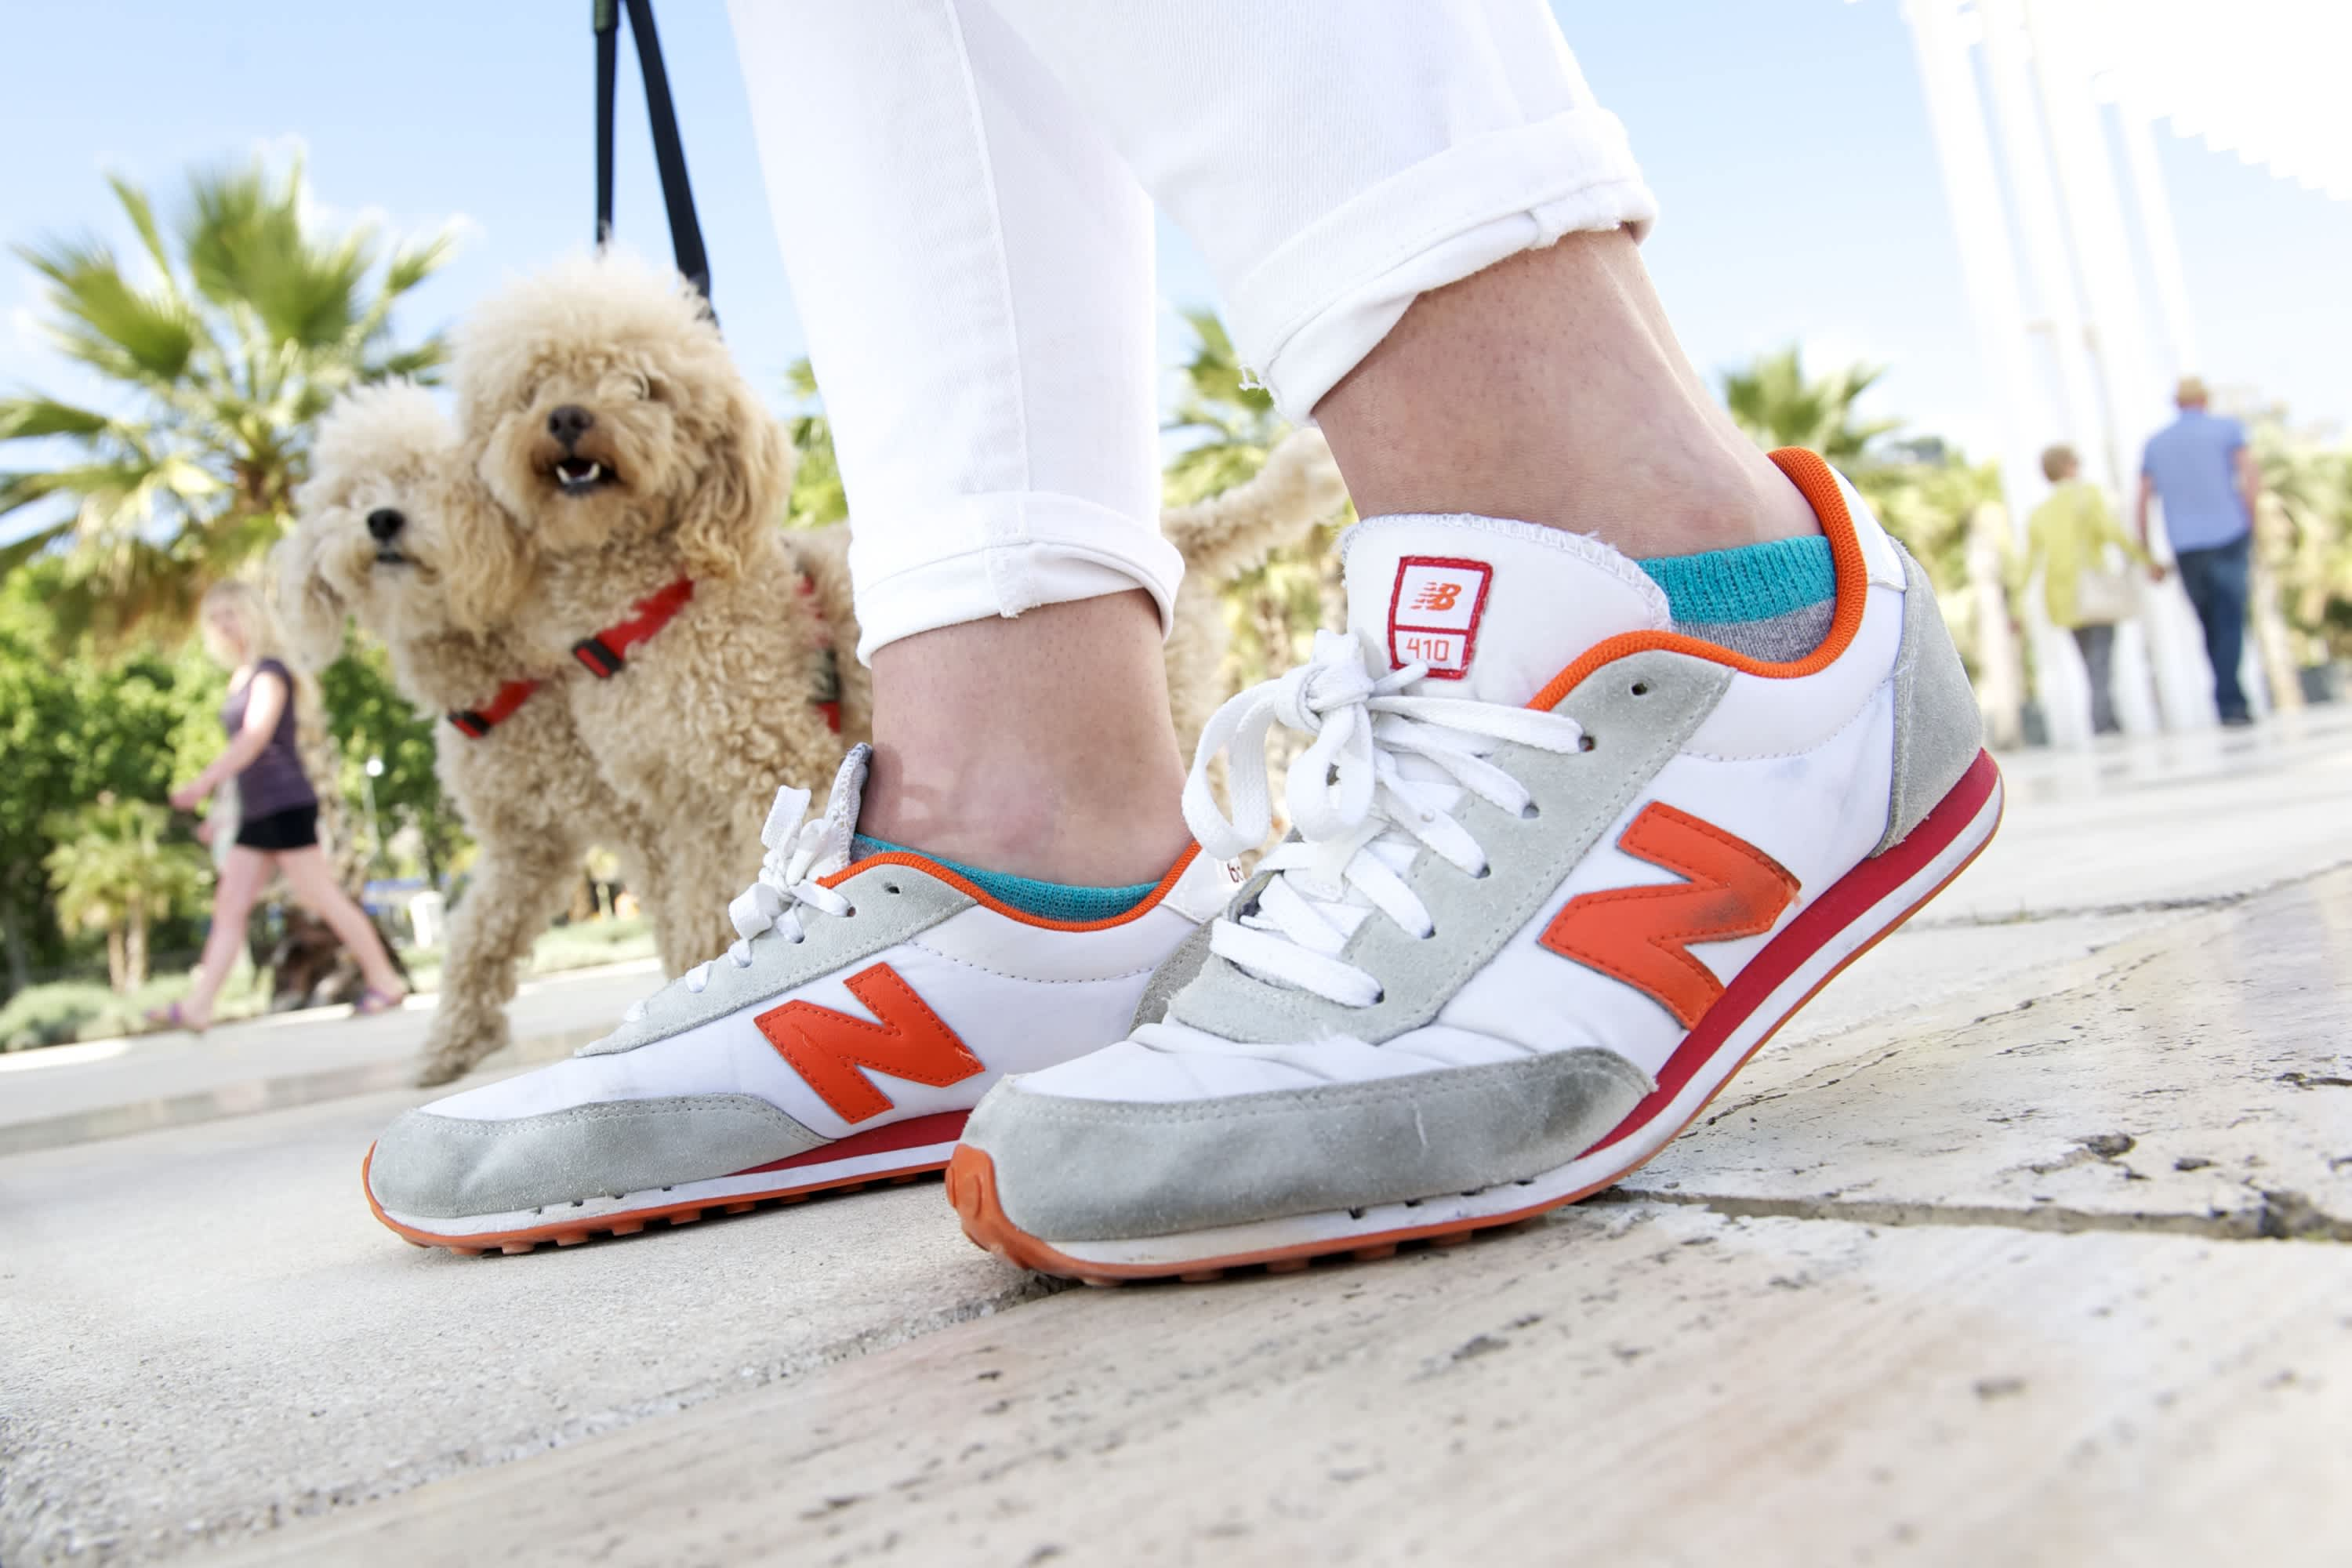 New Balance trainers.